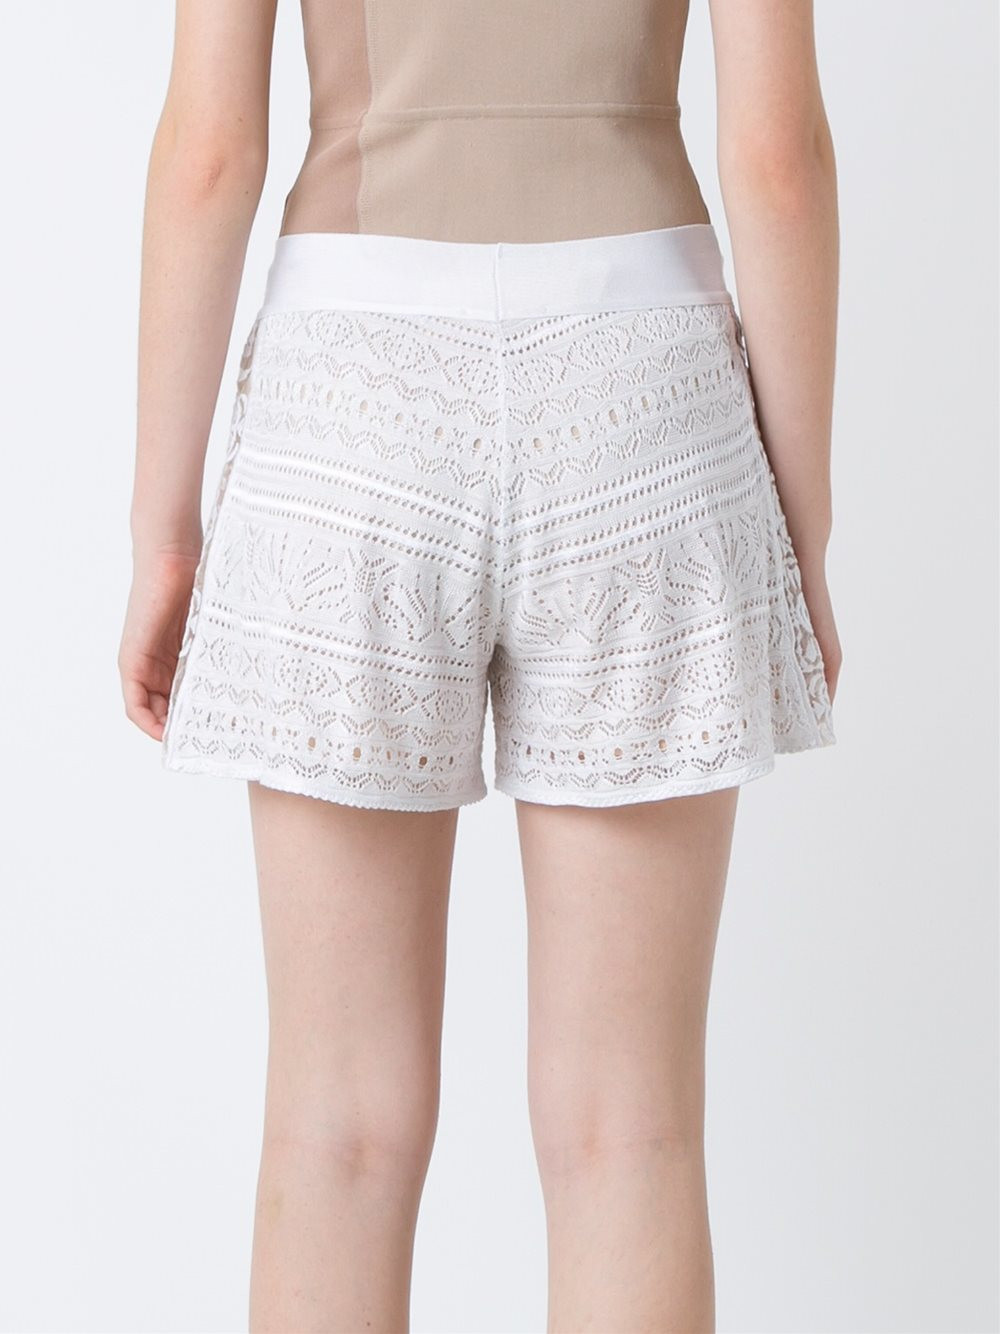 Luxury Cecilia Prado Crochet Shorts Women Cotton Acrylic White Crochet Shorts Of Amazing 40 Photos White Crochet Shorts